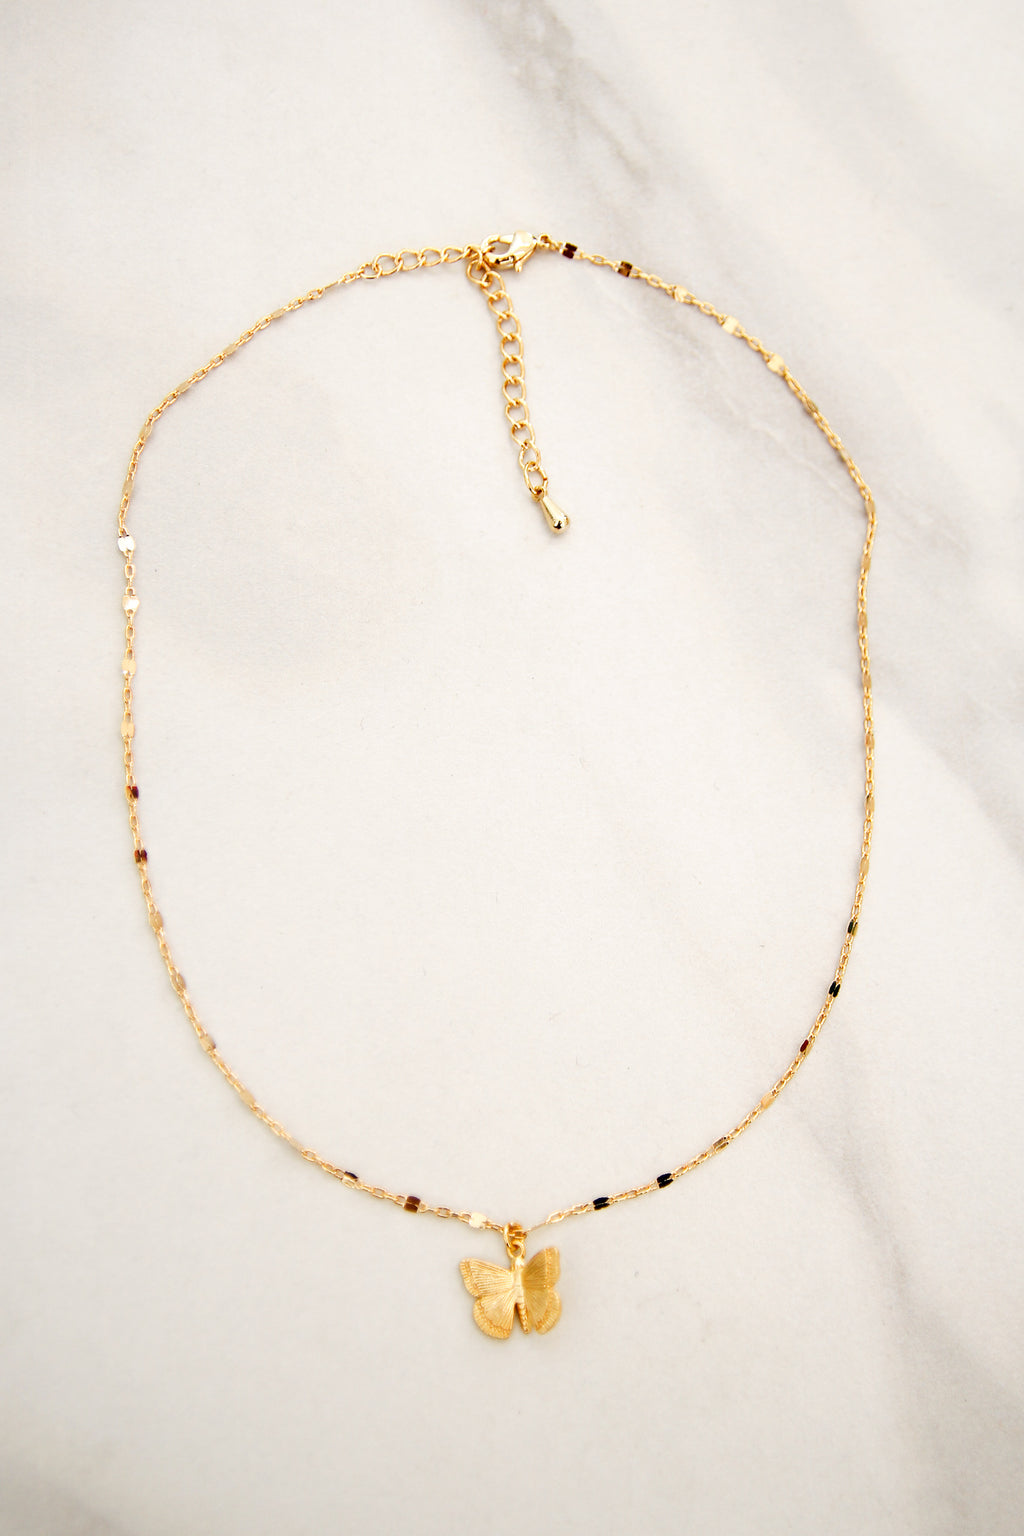 Waiting In the Wings Necklace - Gold